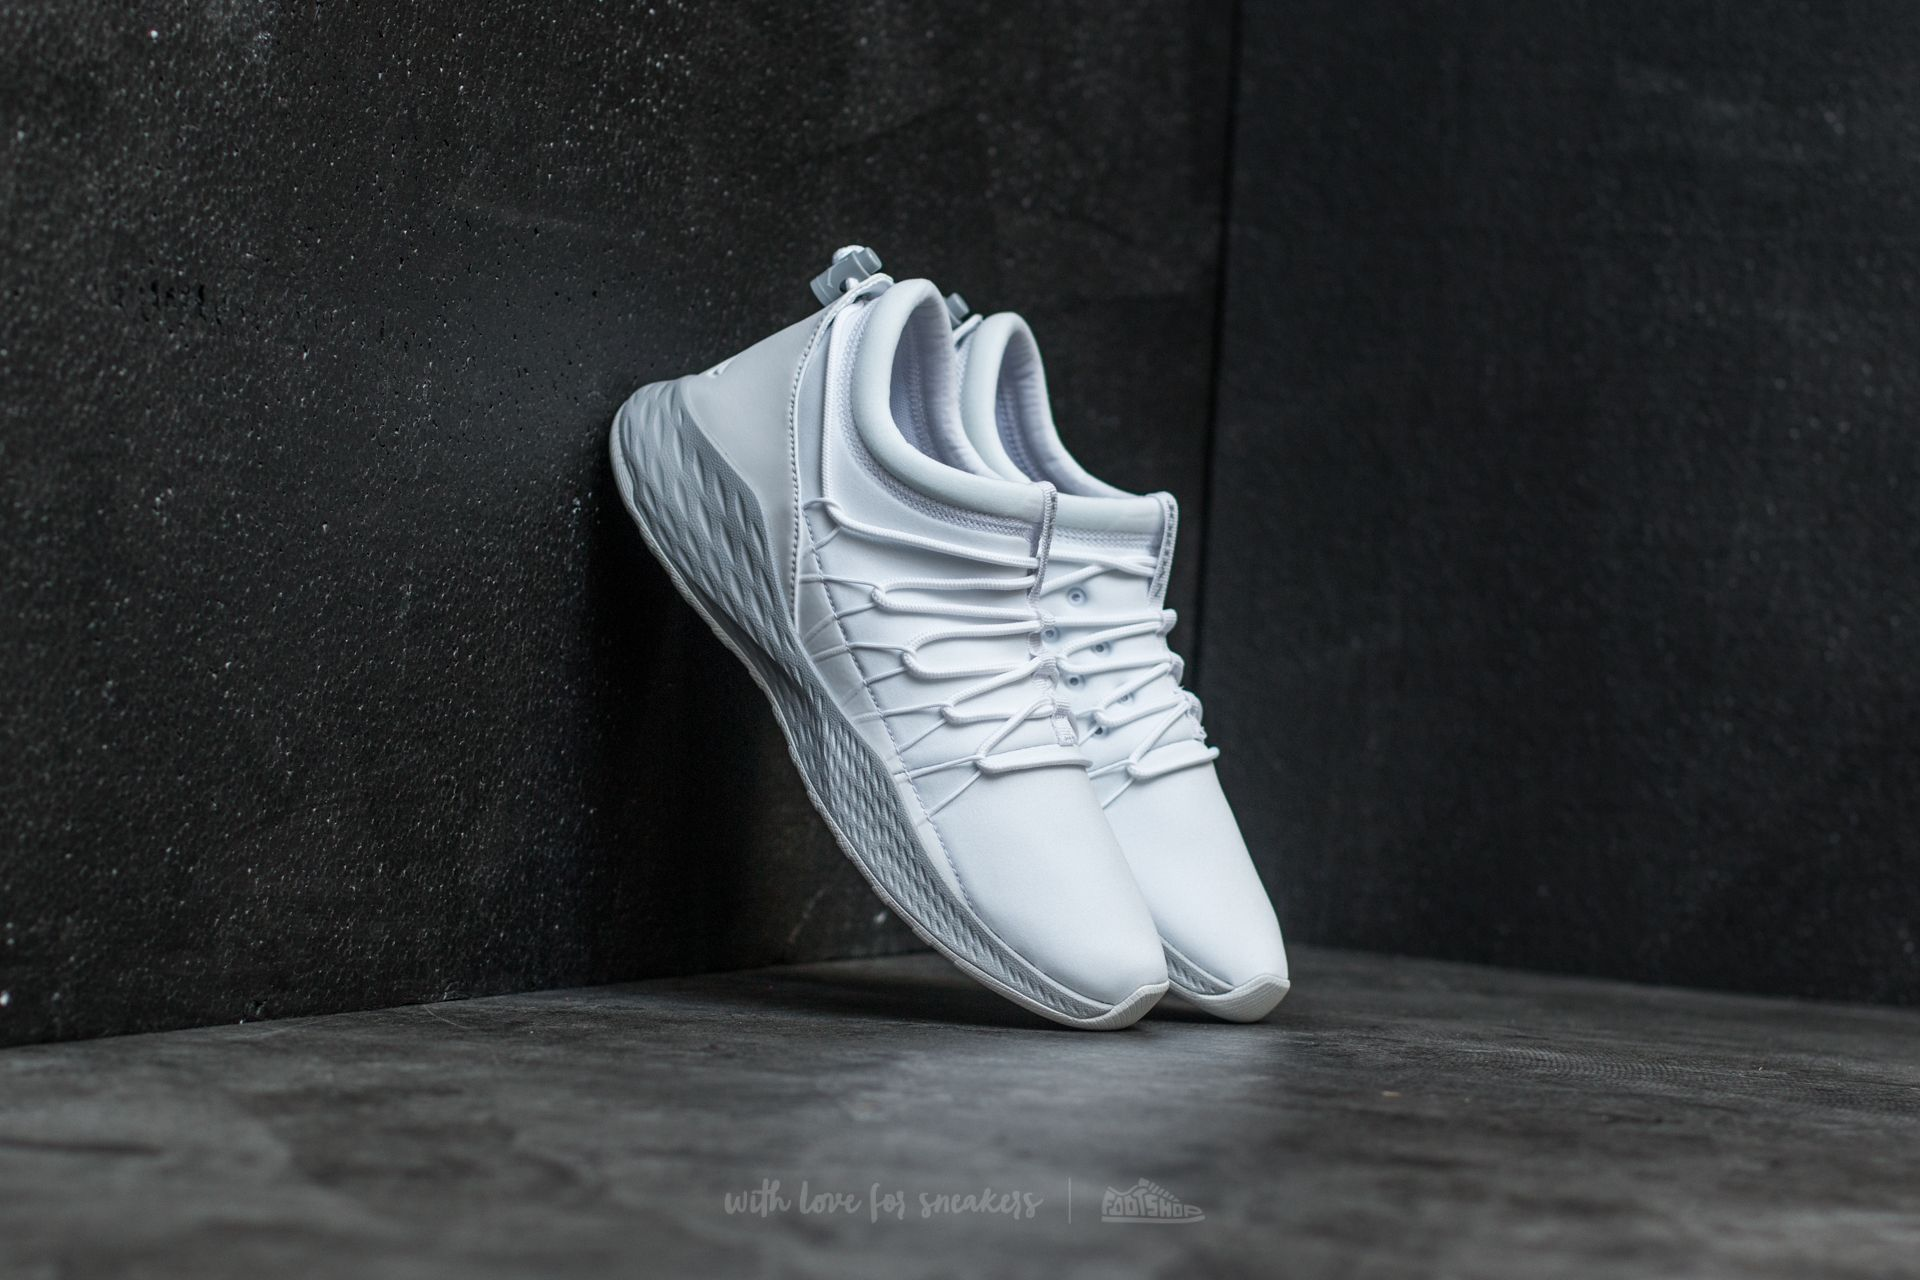 714b785e40b Jordan Formula 23 Toggle White/ Wolf Grey-Pure Platinum | Footshop